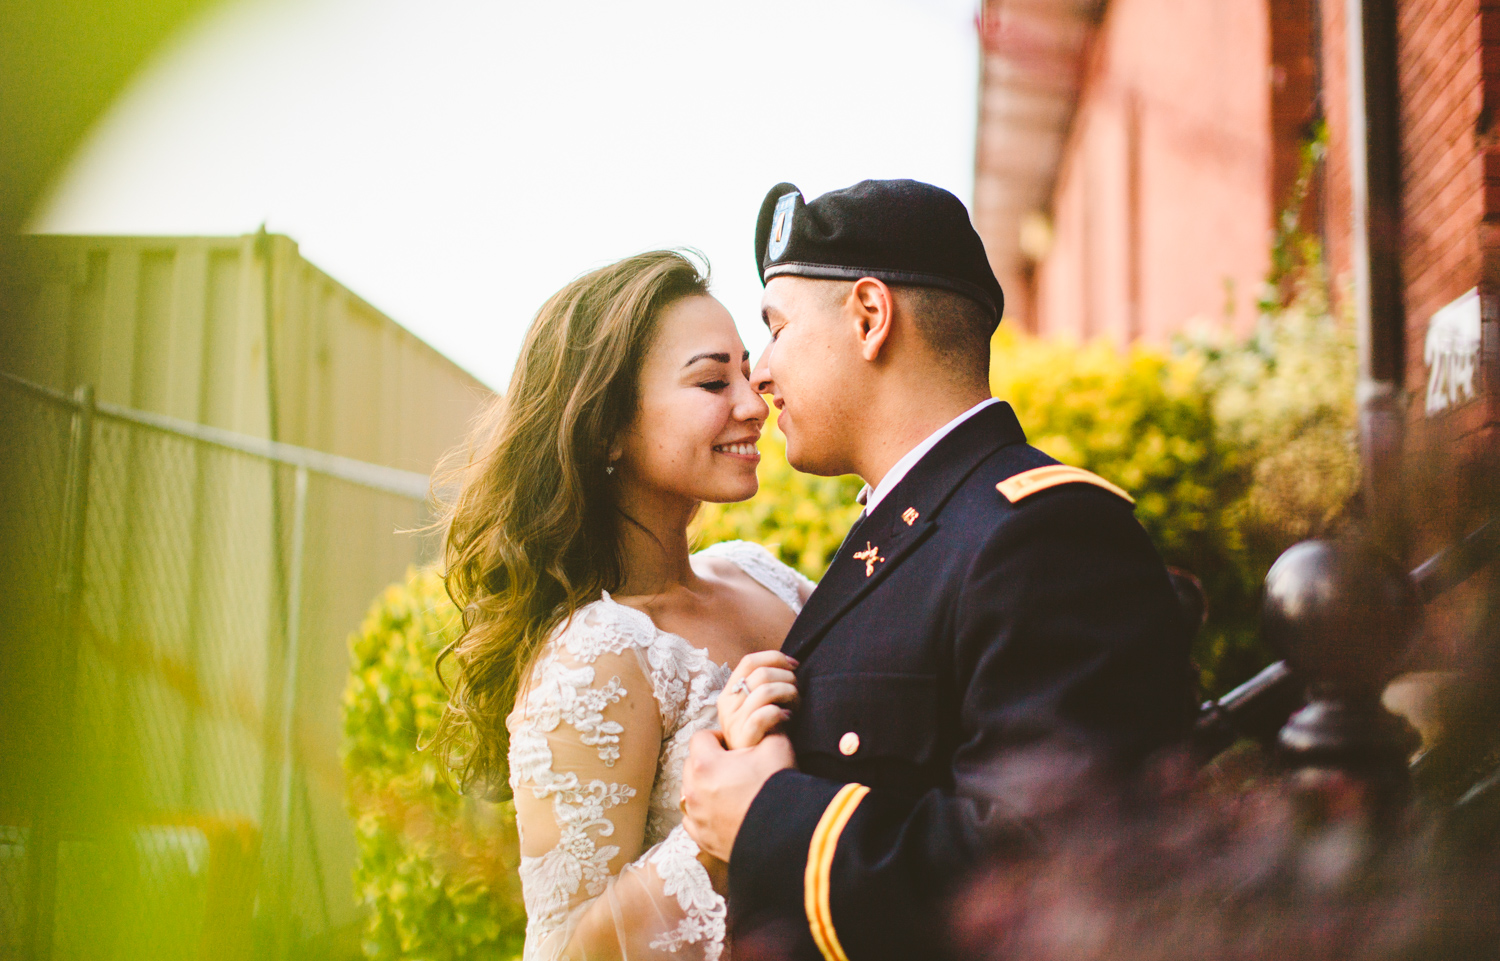 025 colorful creative portrait at a military wedding.jpg